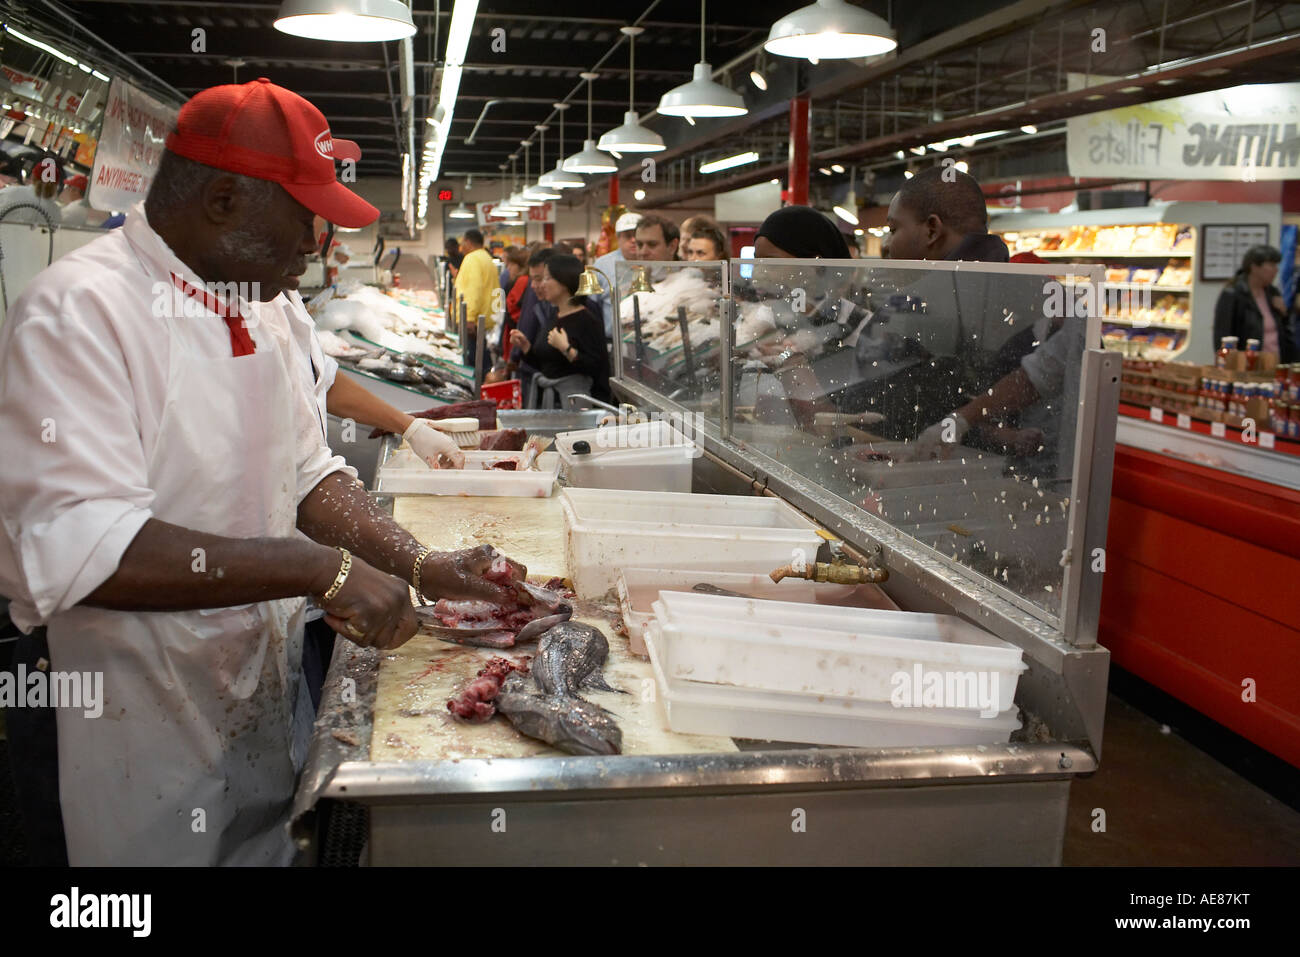 Man scaling fish wholey s market pittsburgh pa usa stock for Wholey s fish market